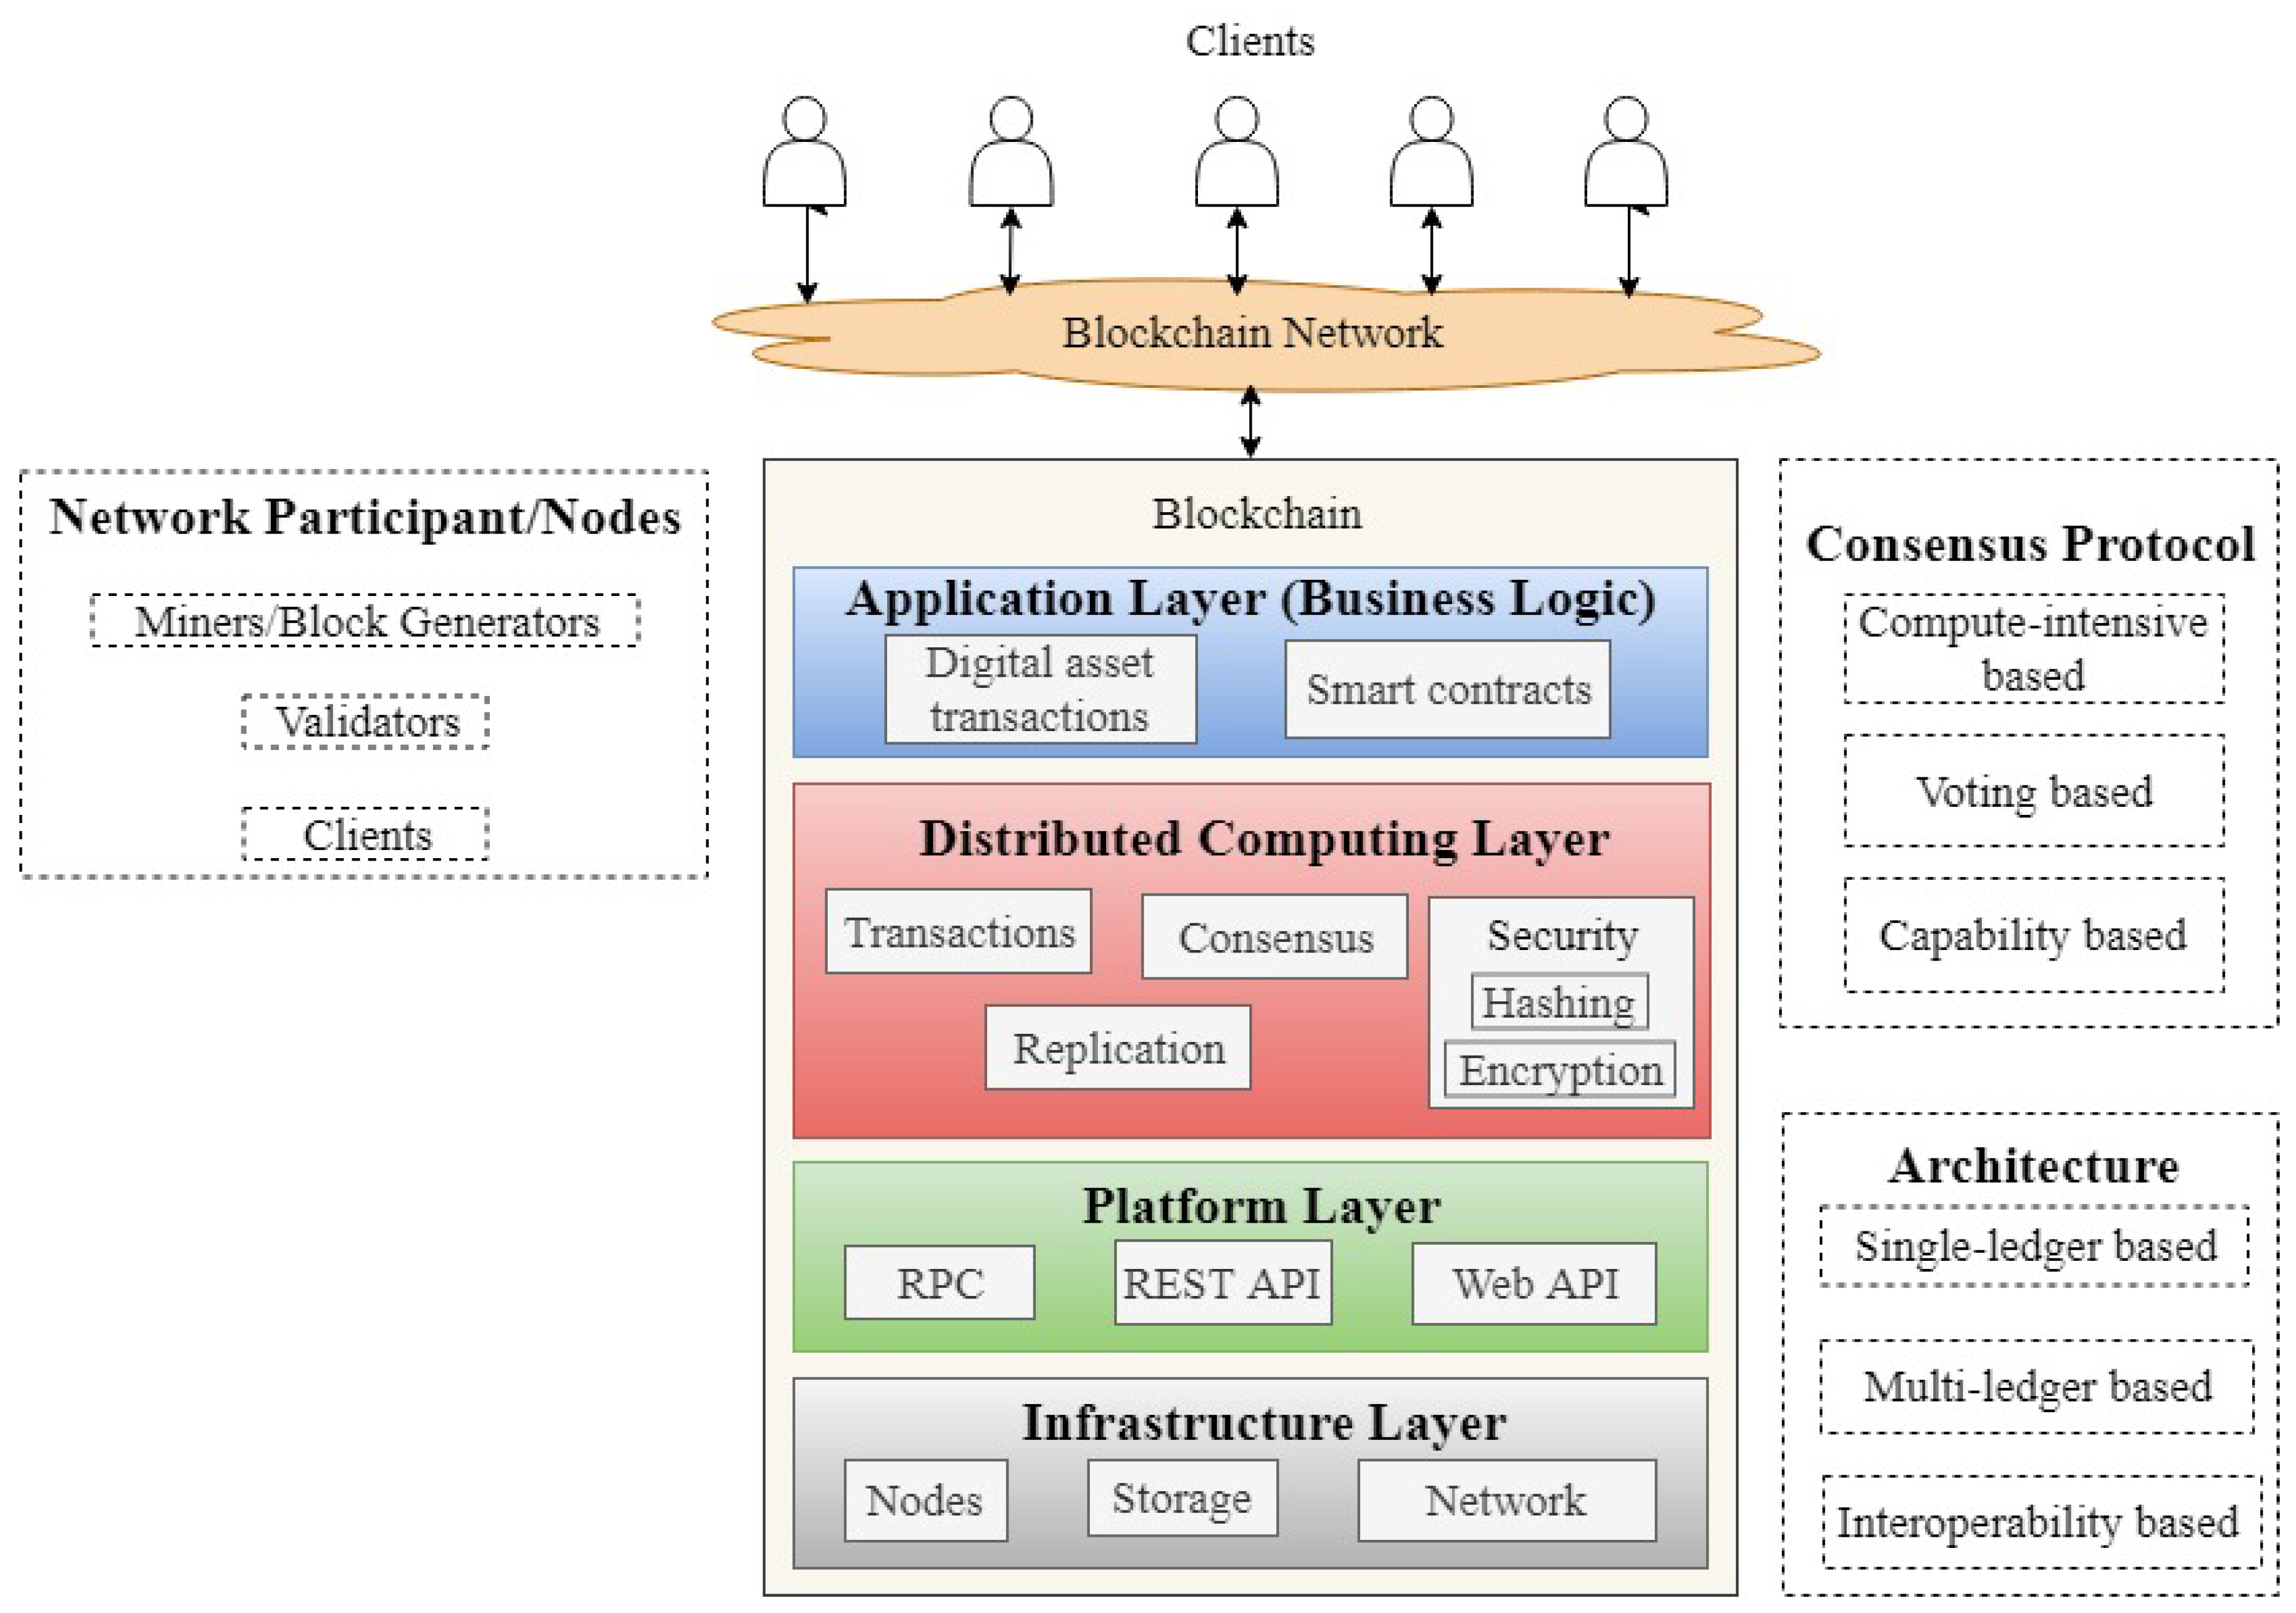 Symmetry Free Full Text A Review Of Blockchain Architecture And Consensus Protocols Use Cases Challenges And Solutions Html